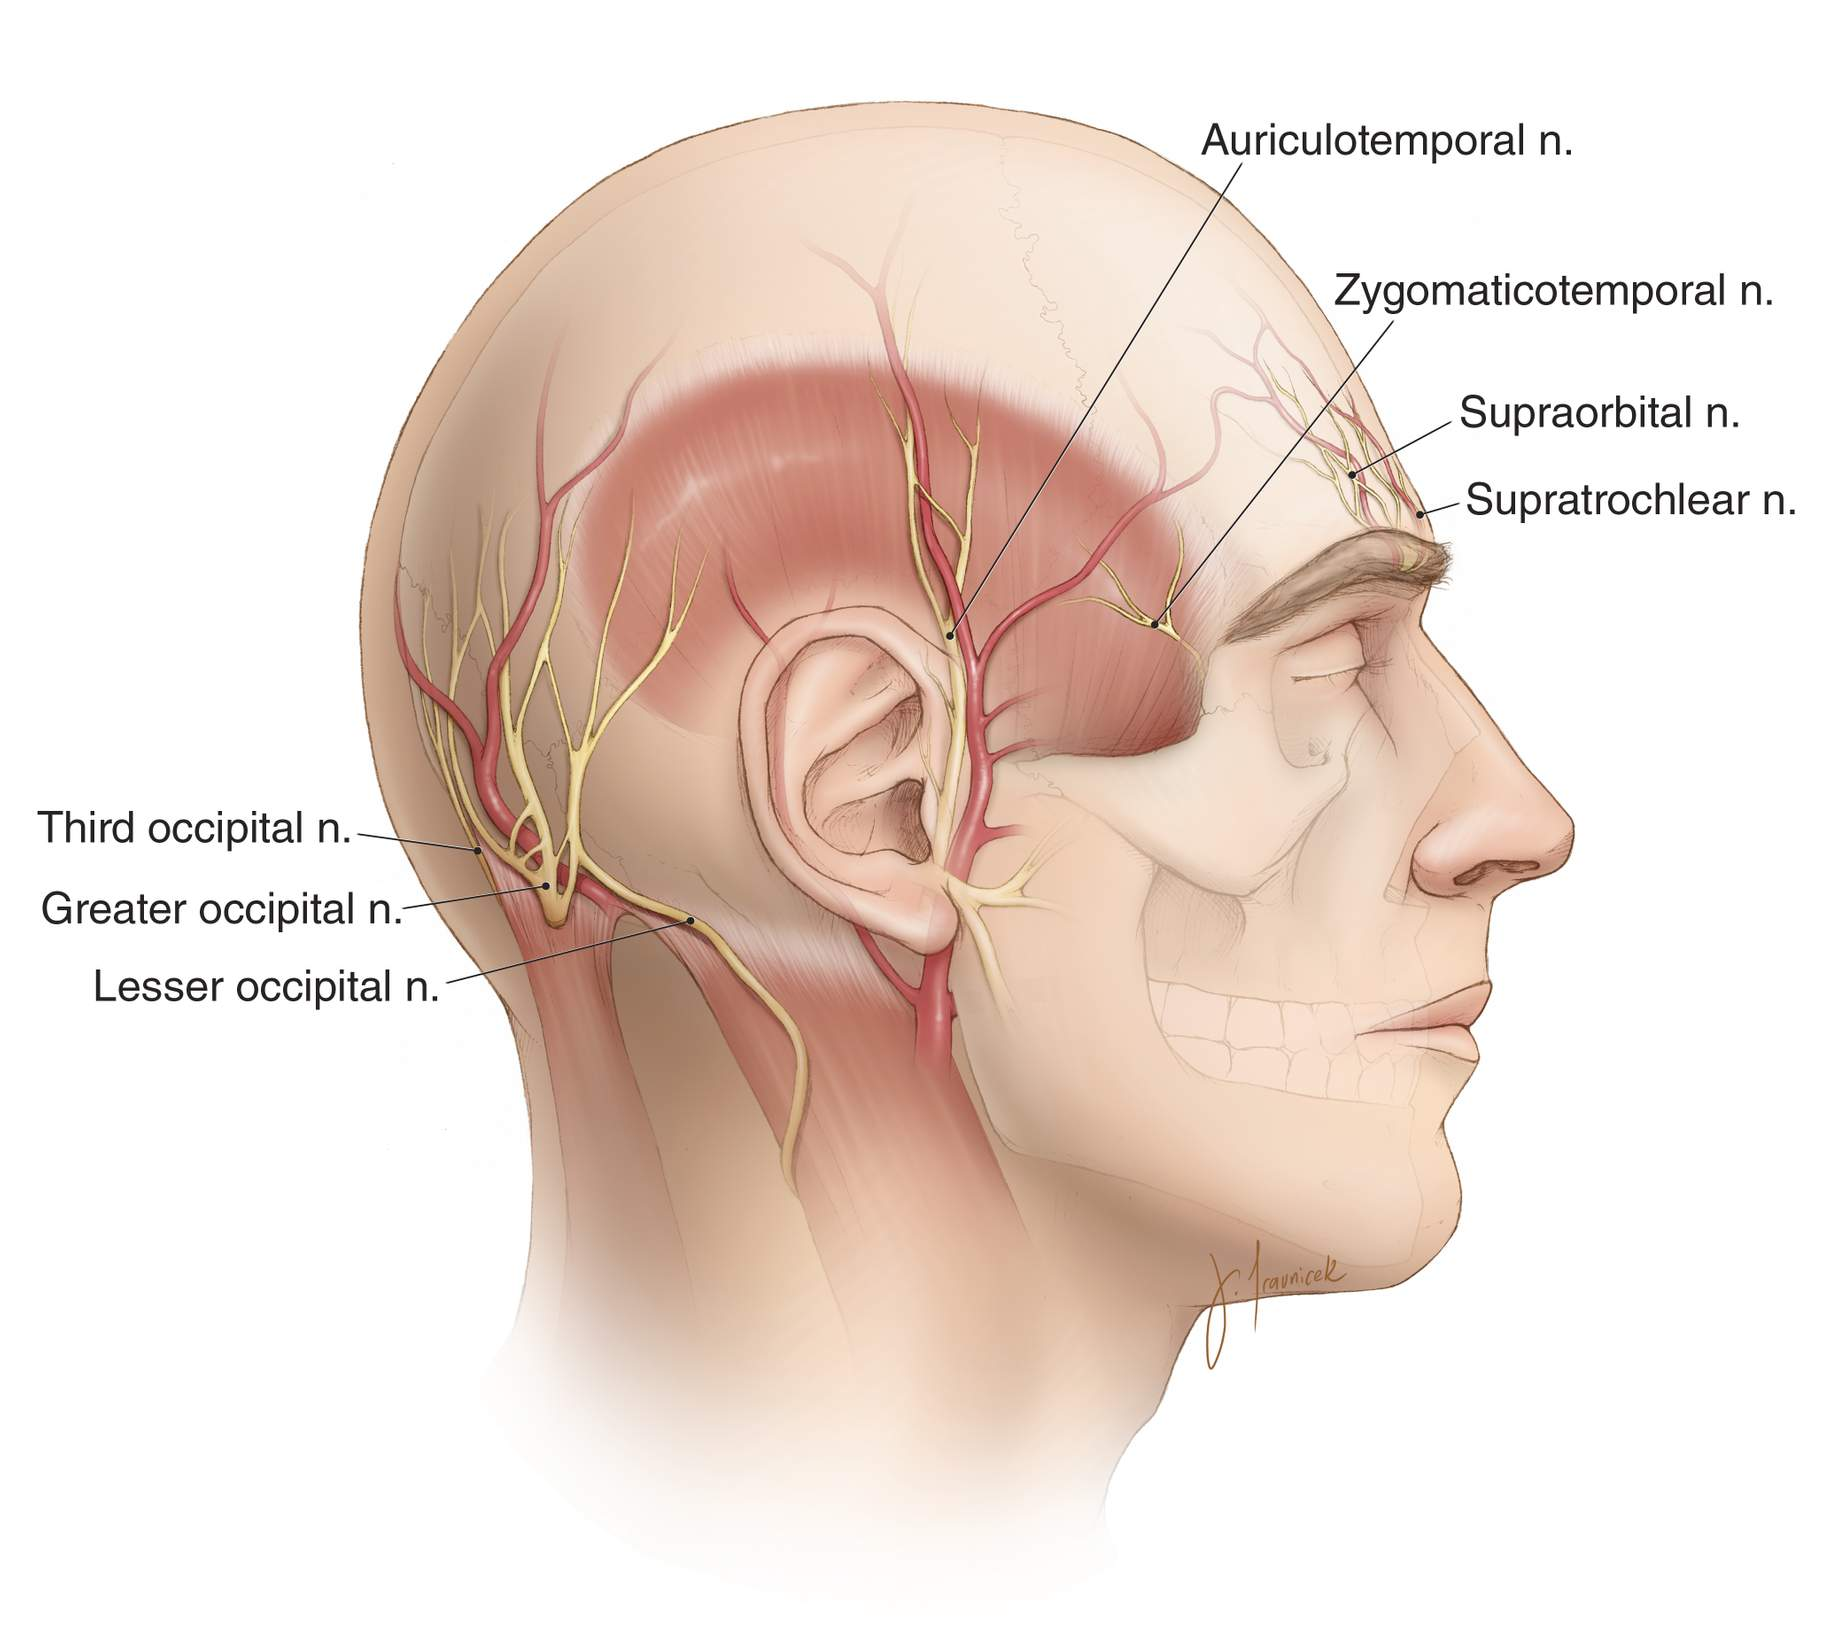 Figure 3: The relevant neurovascular anatomy of the scalp for planning incisions is shown. The vasculature of the scalp is derived from the internal and external carotid arteries. These arteries include the supraorbital, supratrochlear, superficial temporal, posterior auricular, and occipital arteries. The incision should preserve these vessels as much as possible and avoid transecting most of their branches; this measure will promote vascularized scalp flaps.  The vasculature of the scalp becomes more tenuous toward the midline. Therefore, the base of the incision should be close to the periphery of the scalp. Fortunately, the scalp's vascular network is robust, and this leads to a low risk of flap necrosis during cranial surgery despite narrow flap pedicles.